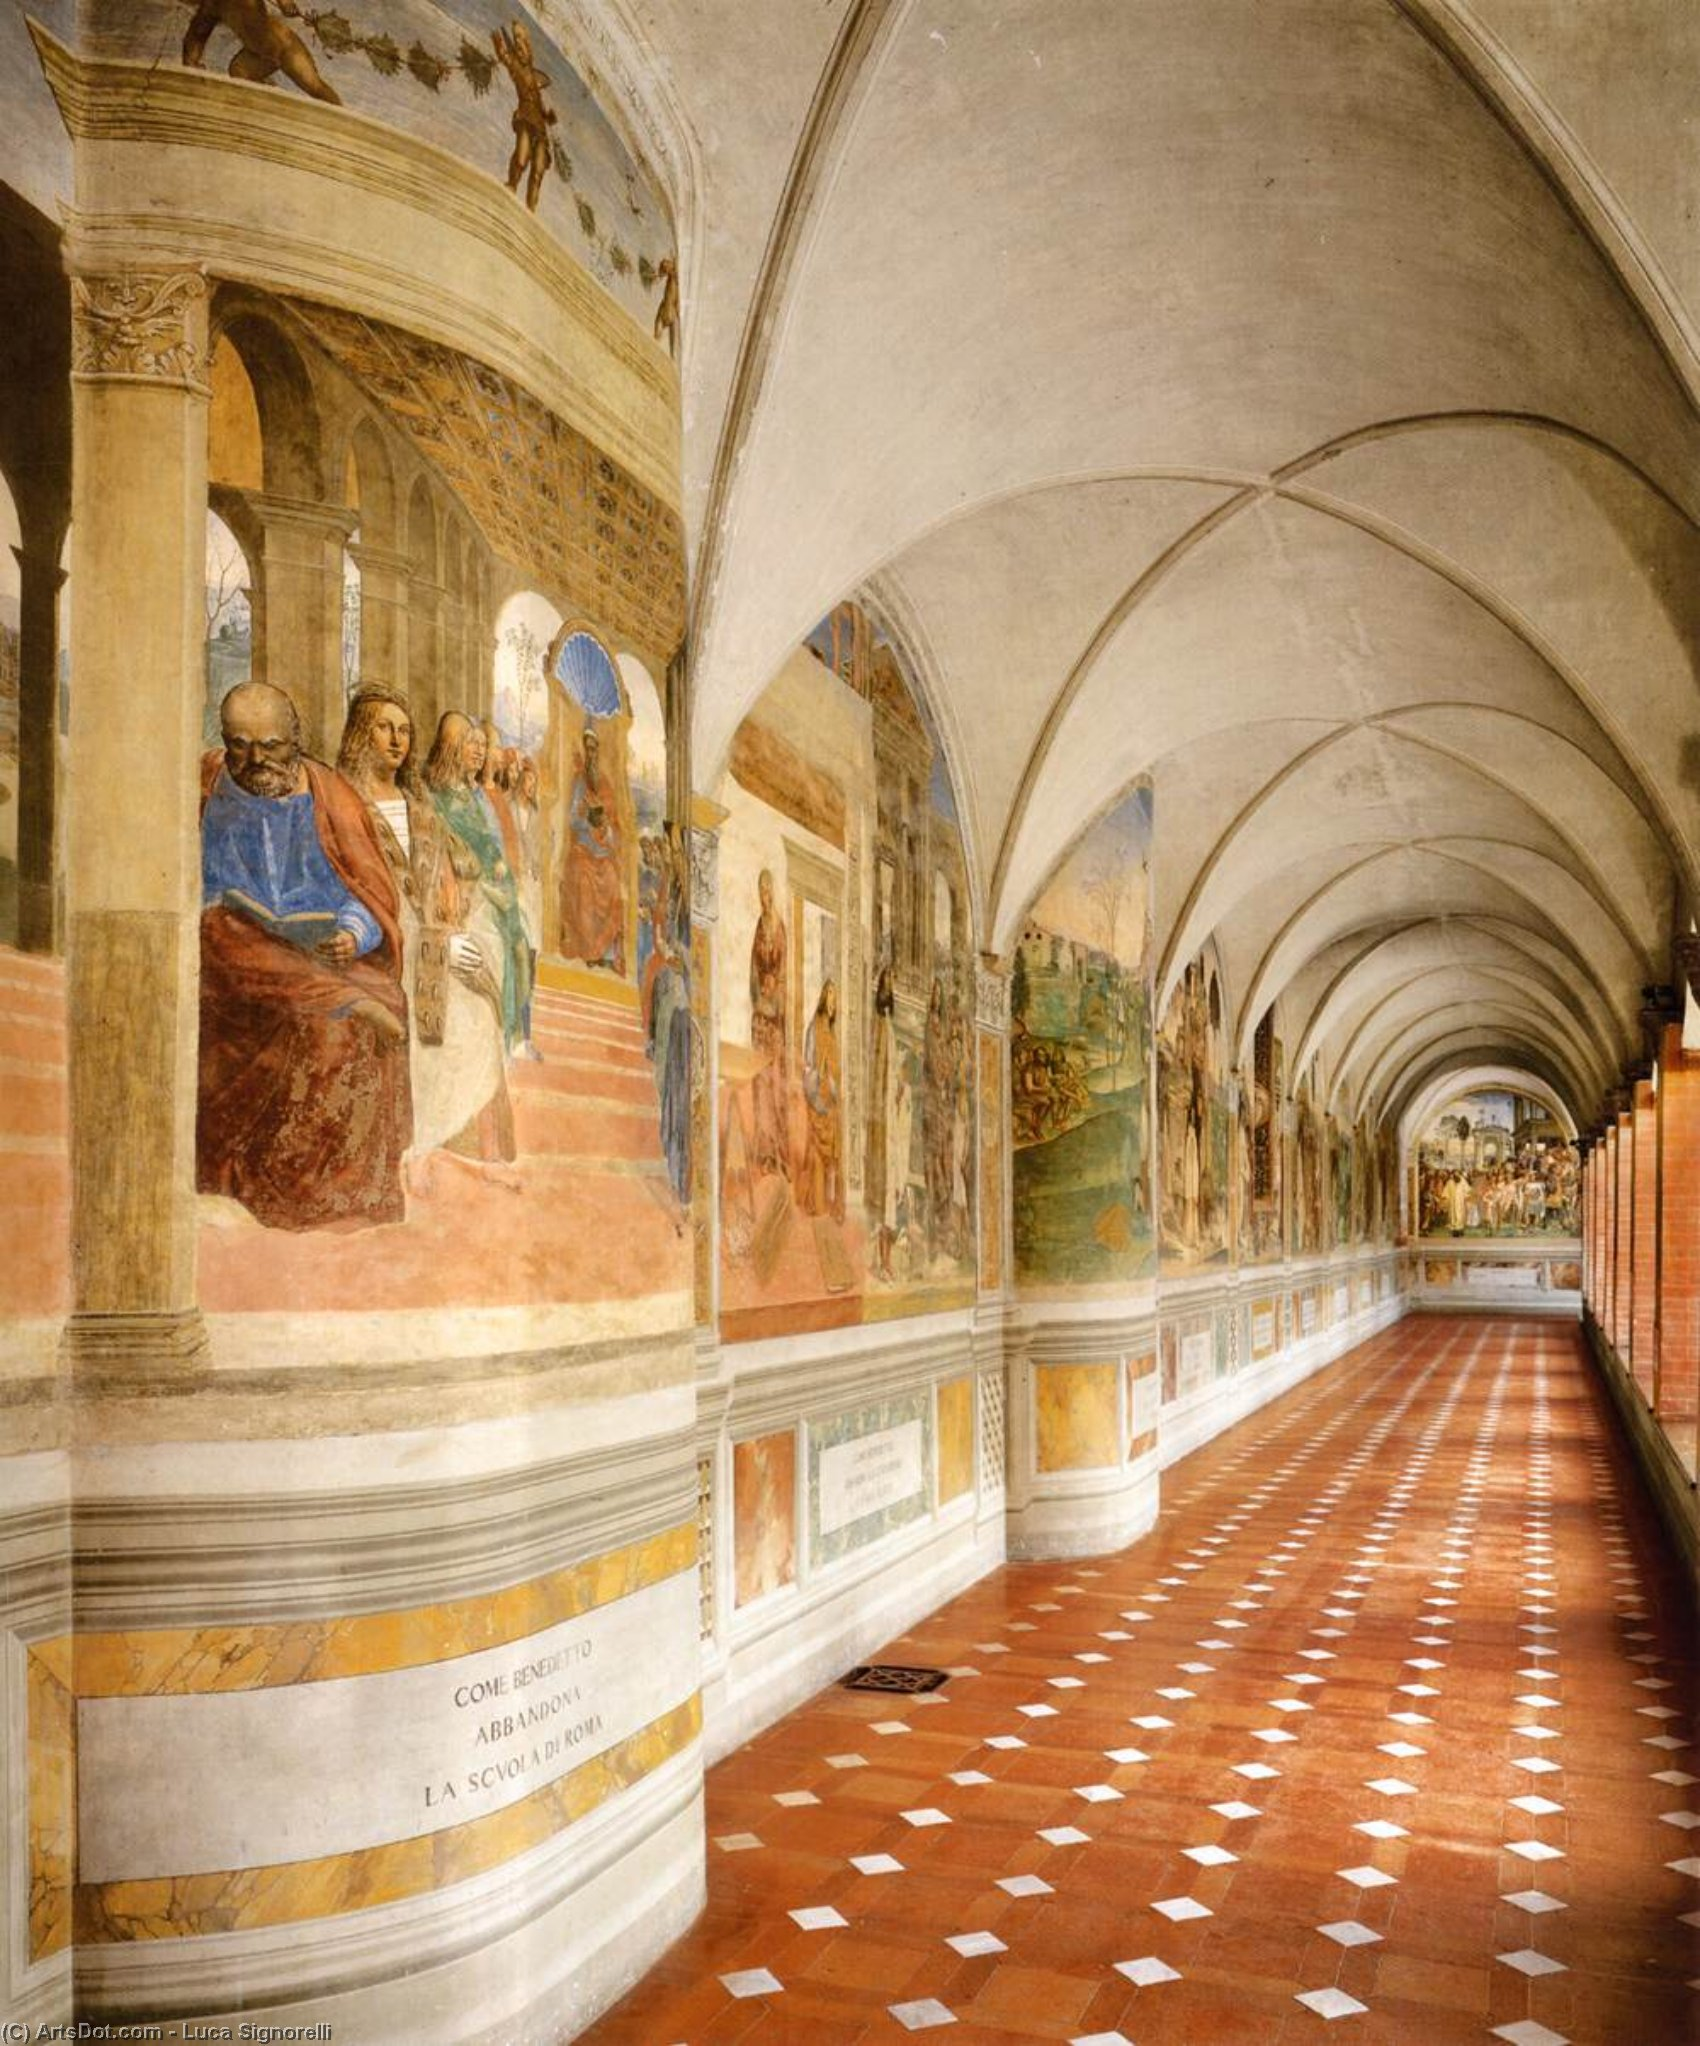 The Great Cloister, Frescoes by Luca Signorelli (1450-1523, Italy)